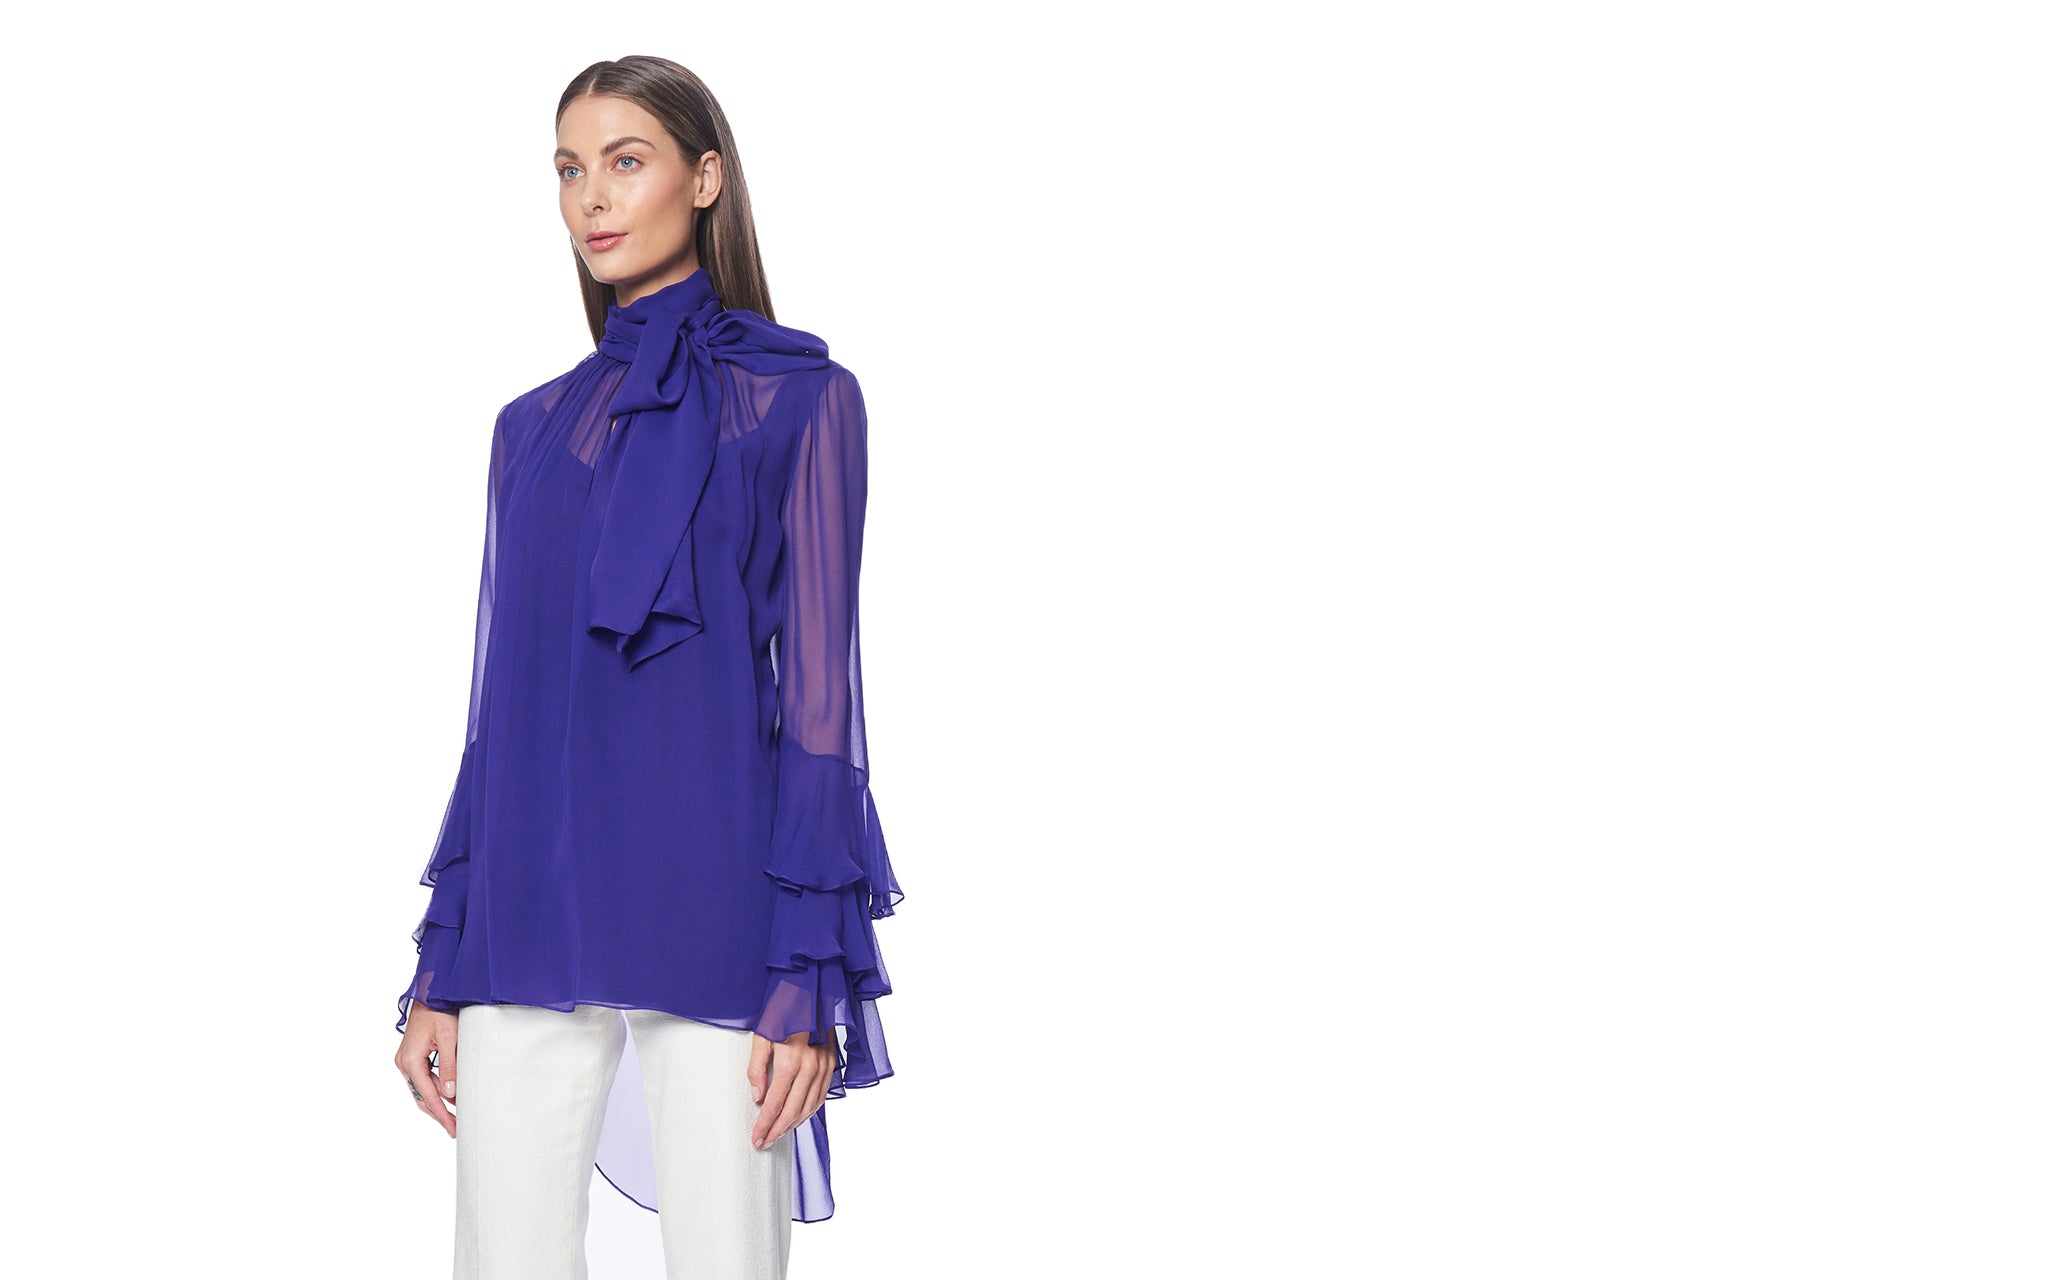 VIOLET RUFFLE CUFF TIE NECK BLOUSE